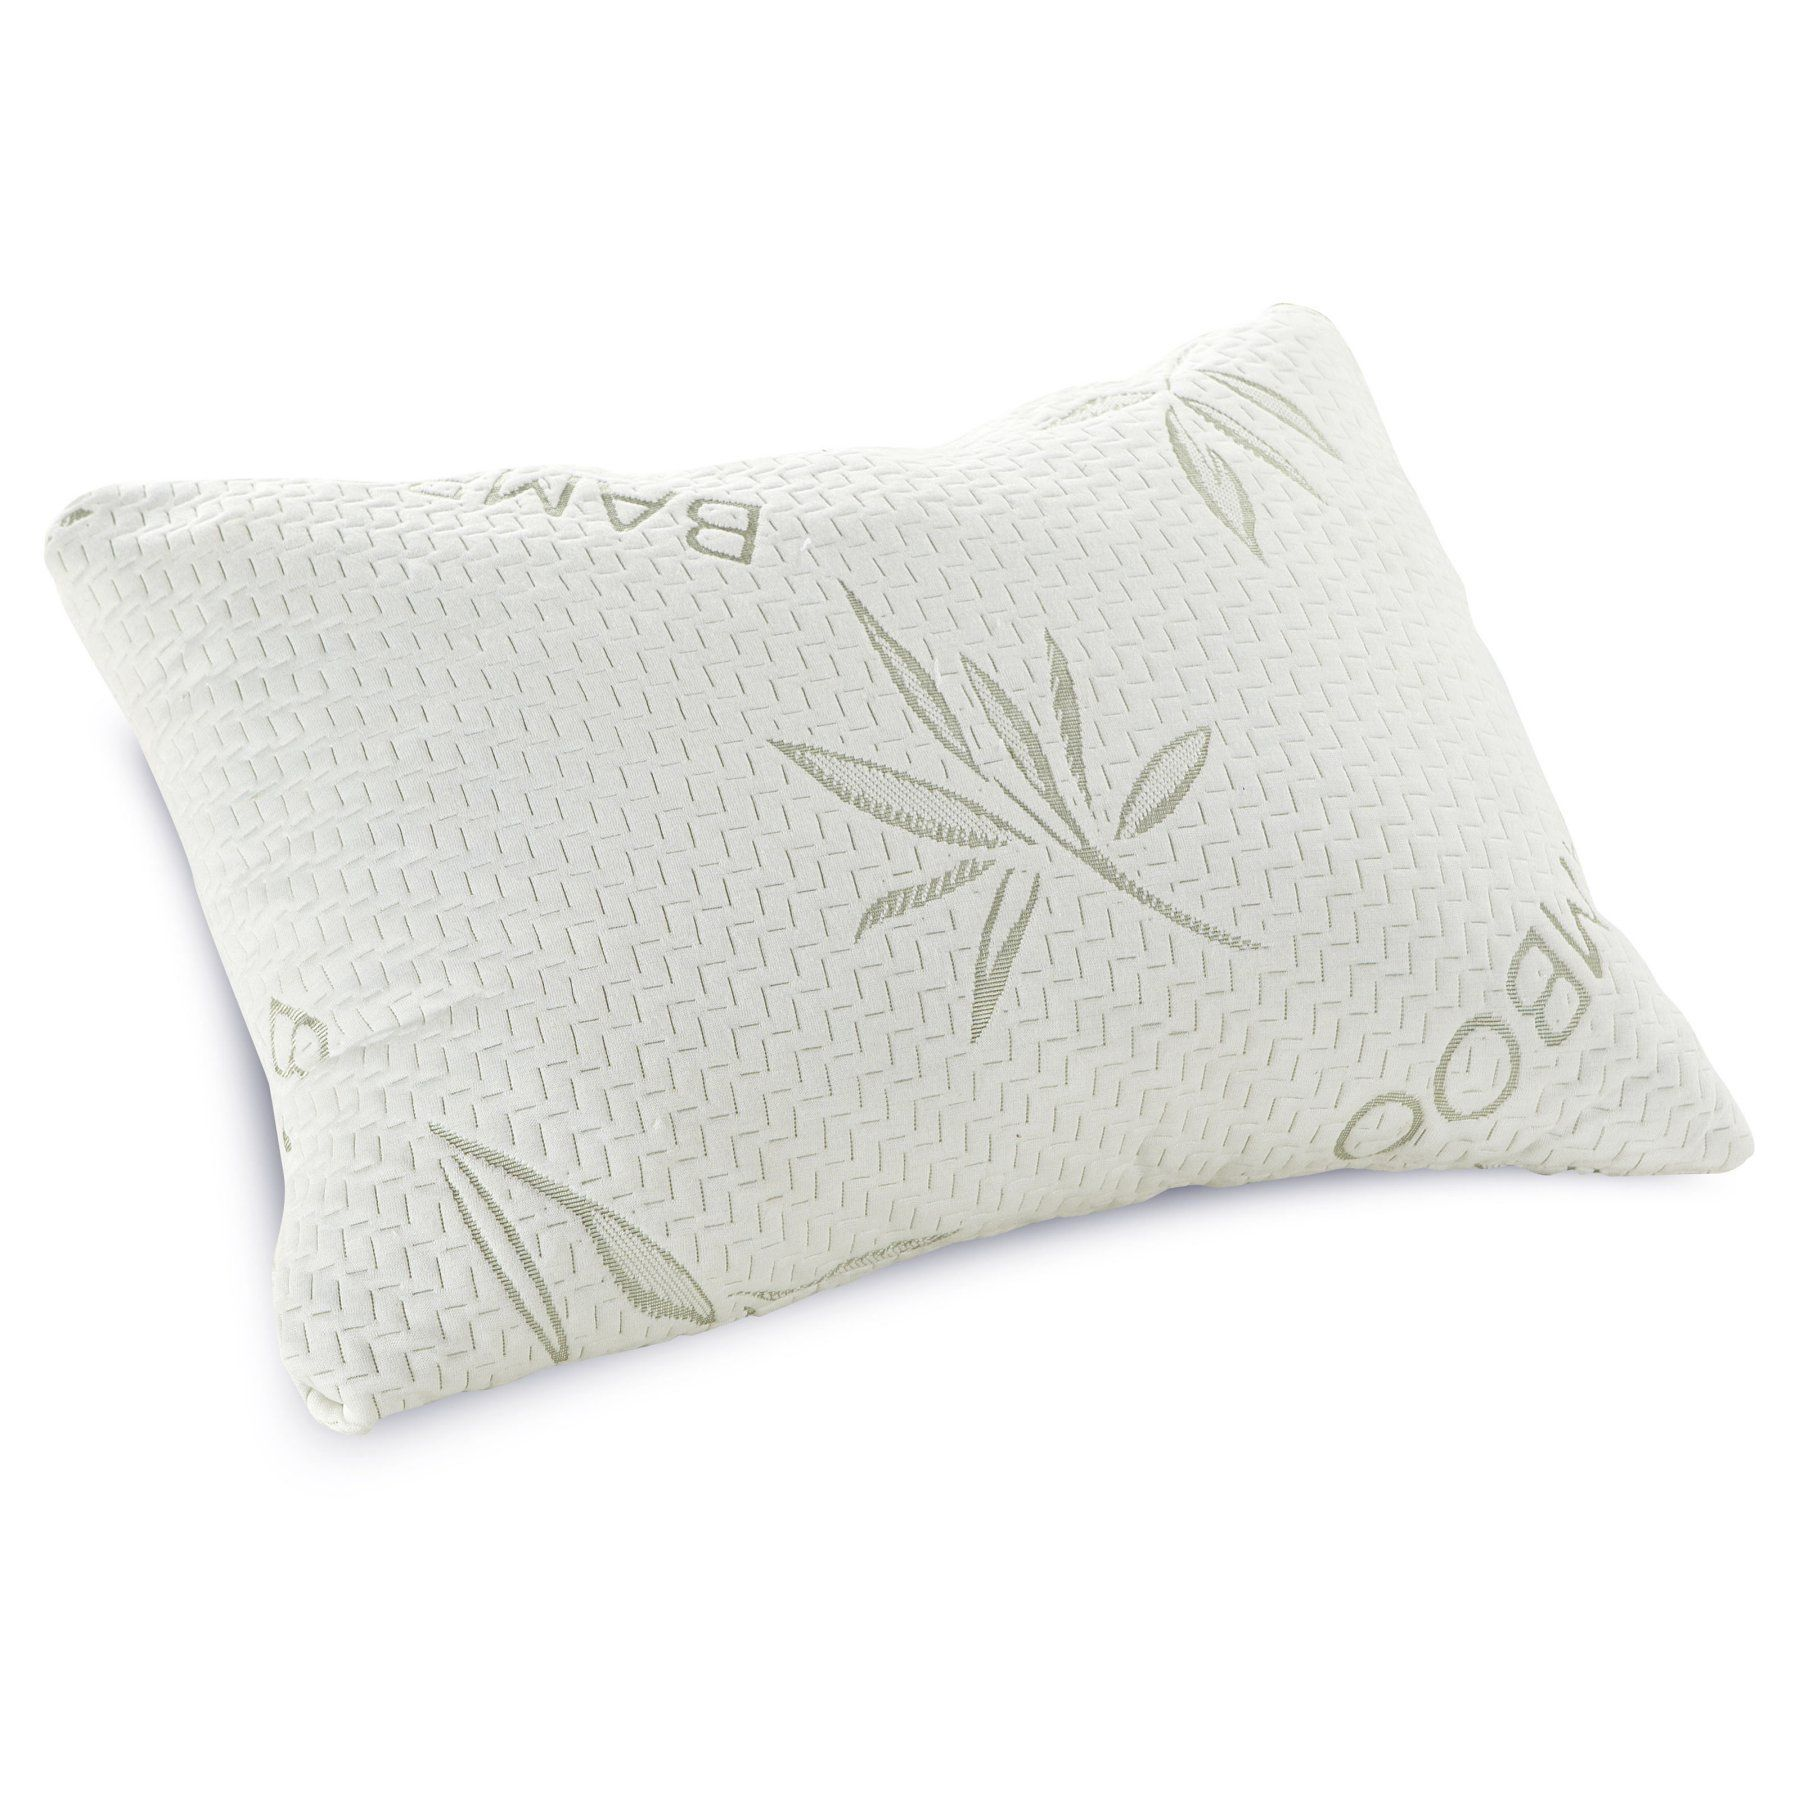 how to wash essence of bamboo pillow